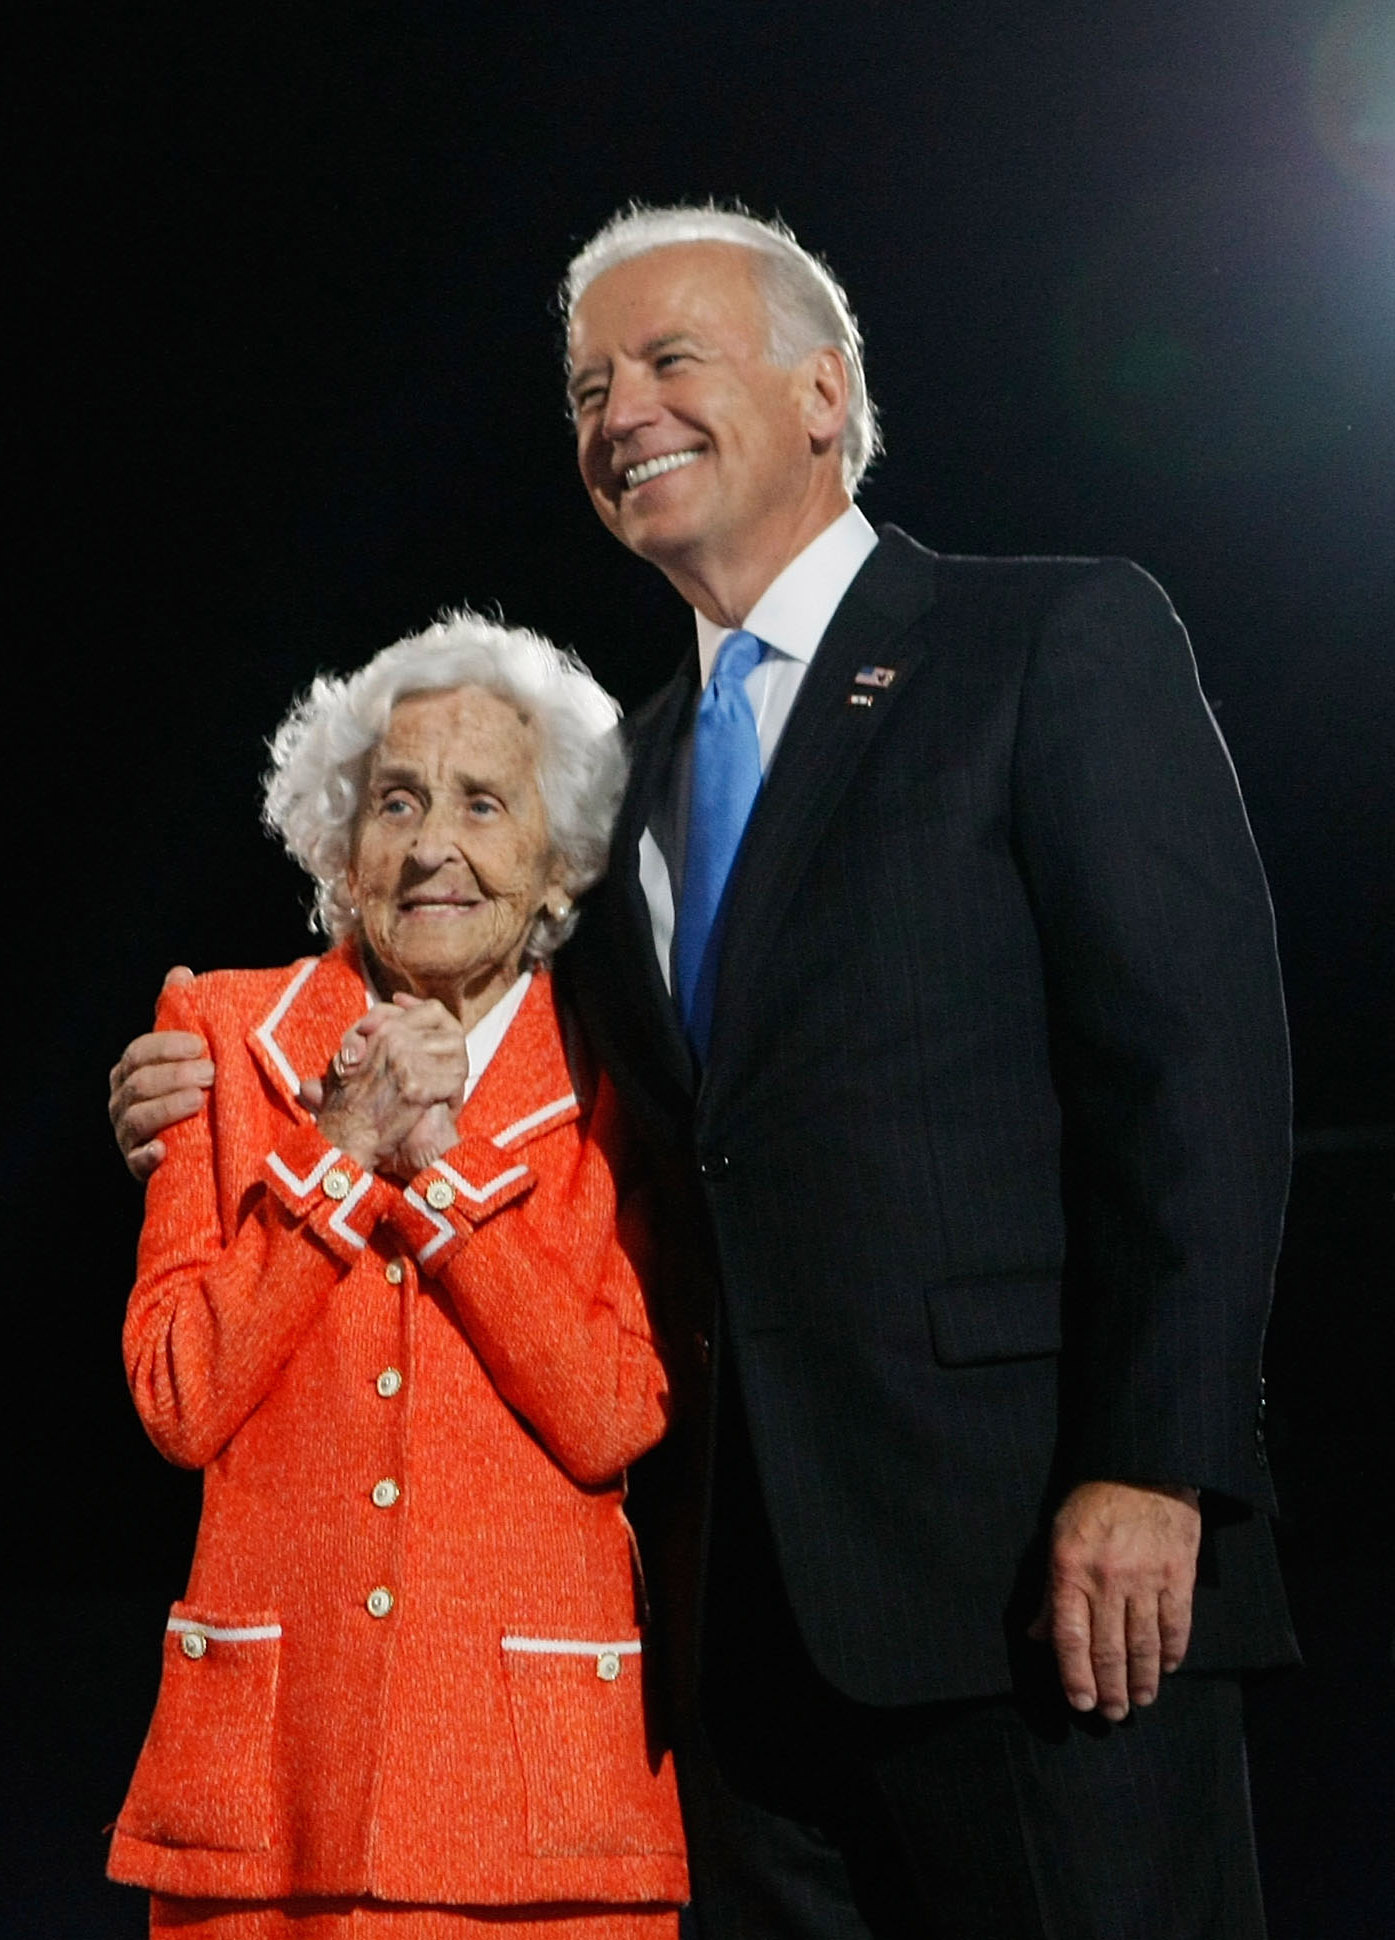 U.S. Vice-President elect Joe Biden stands with his mother Jean during an election night gathering in Grant Park on November 4, 2008 in Chicago, Illinois. (Joe Raedle/Getty Images)